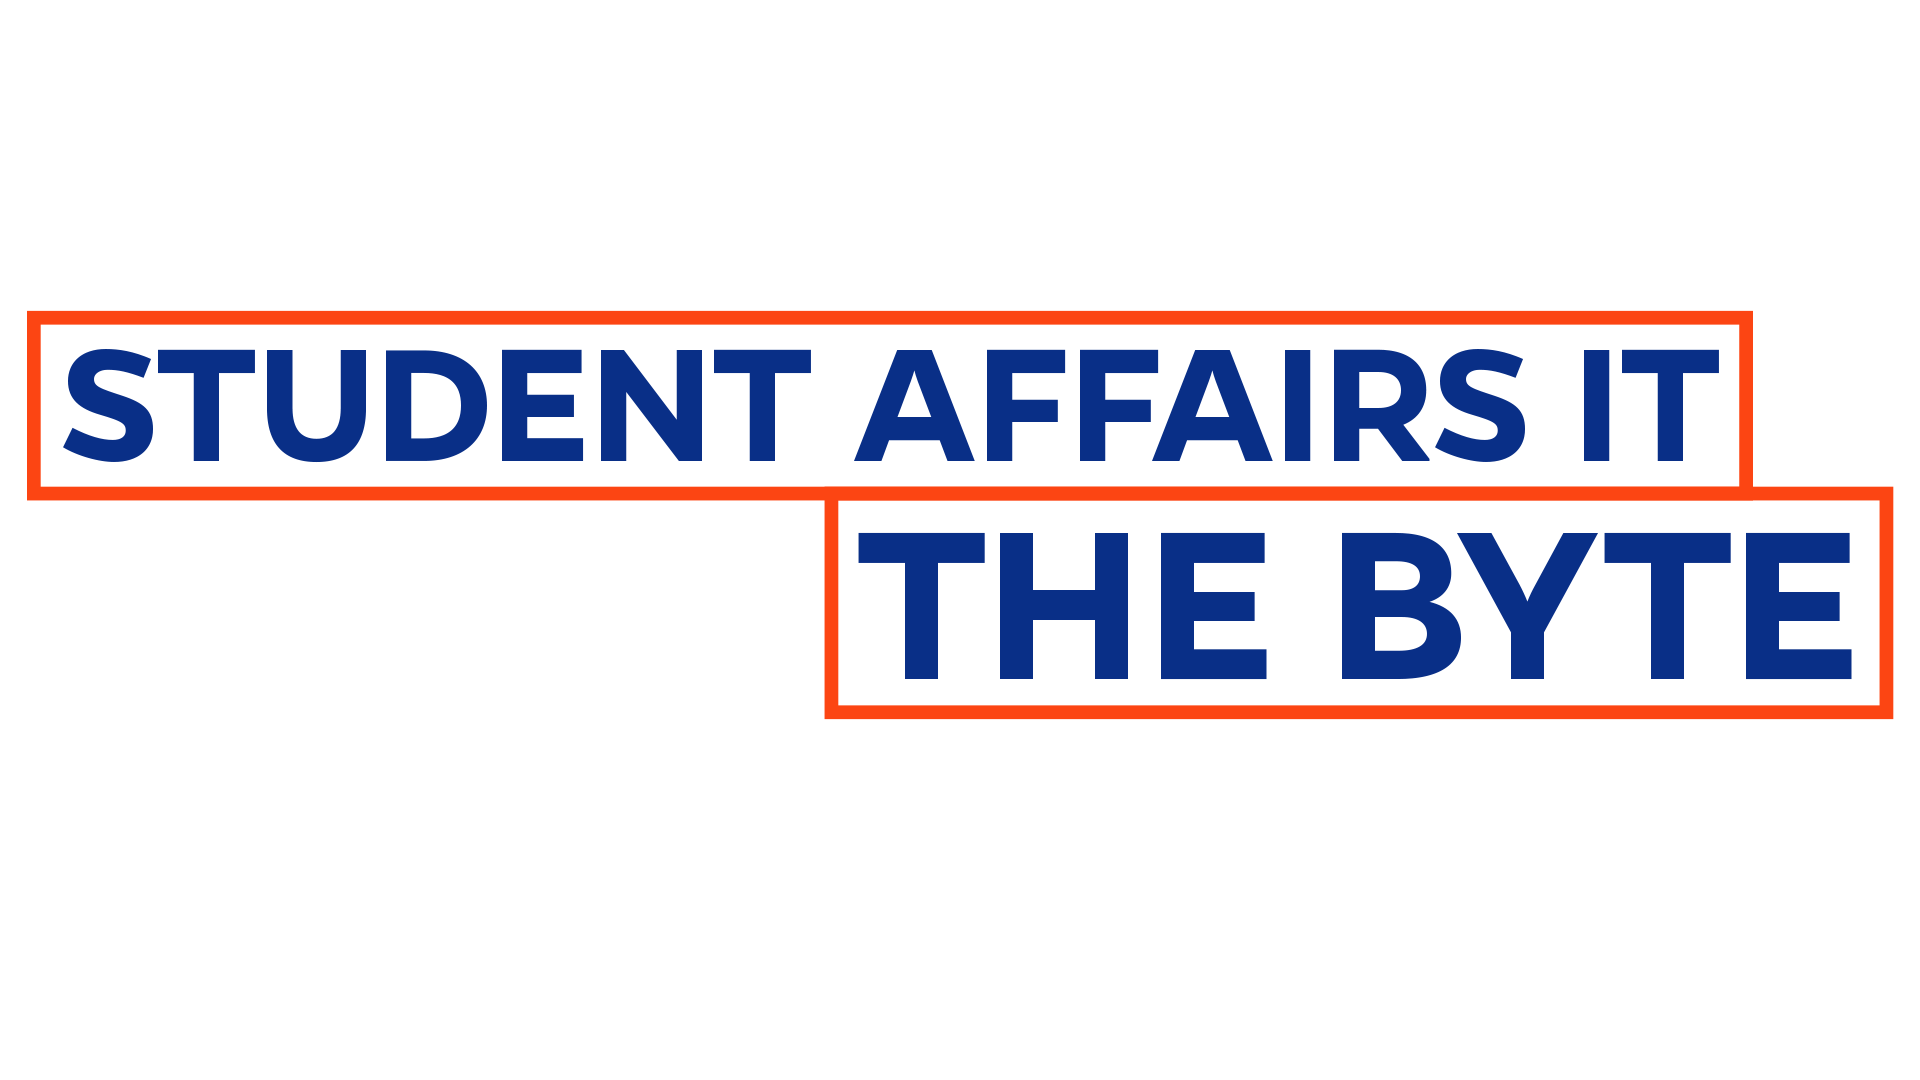 Image showing the logo for the Student Affairs IT Newsletter called the Byte